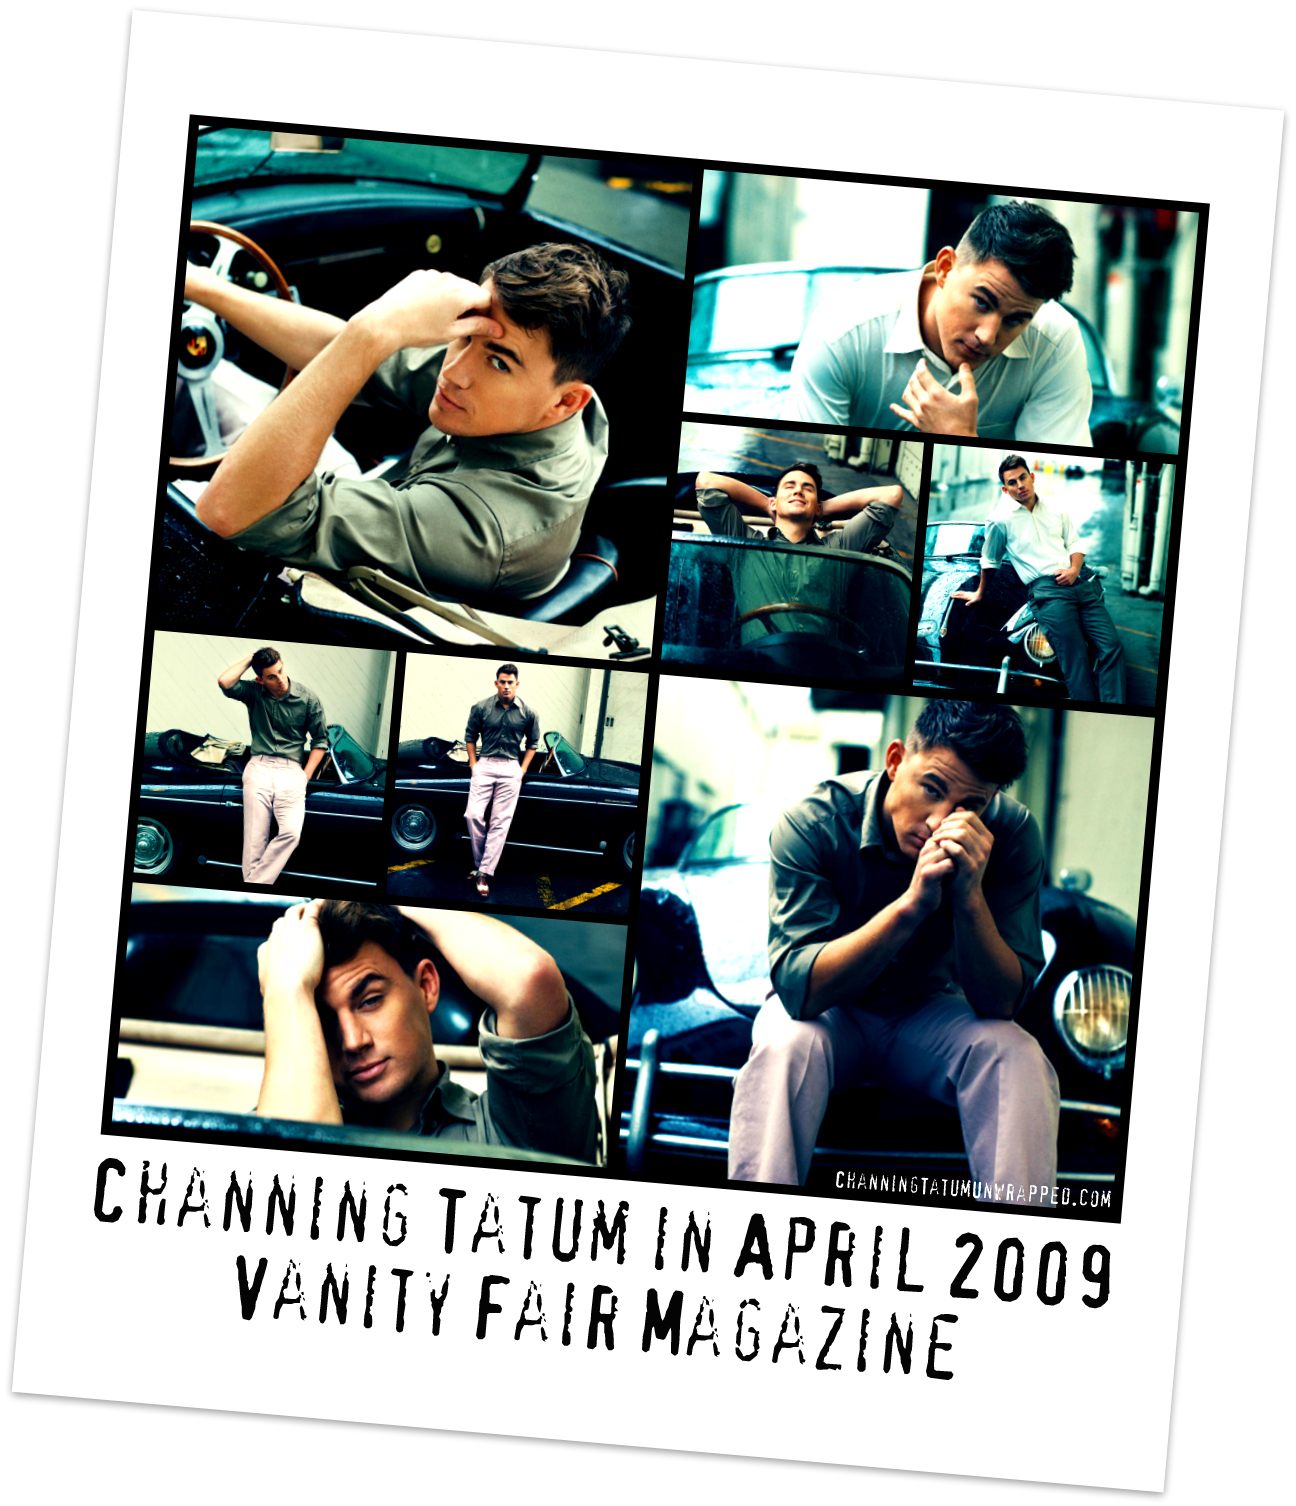 Channing Tatum Featured in April 2009 Vanity Fair